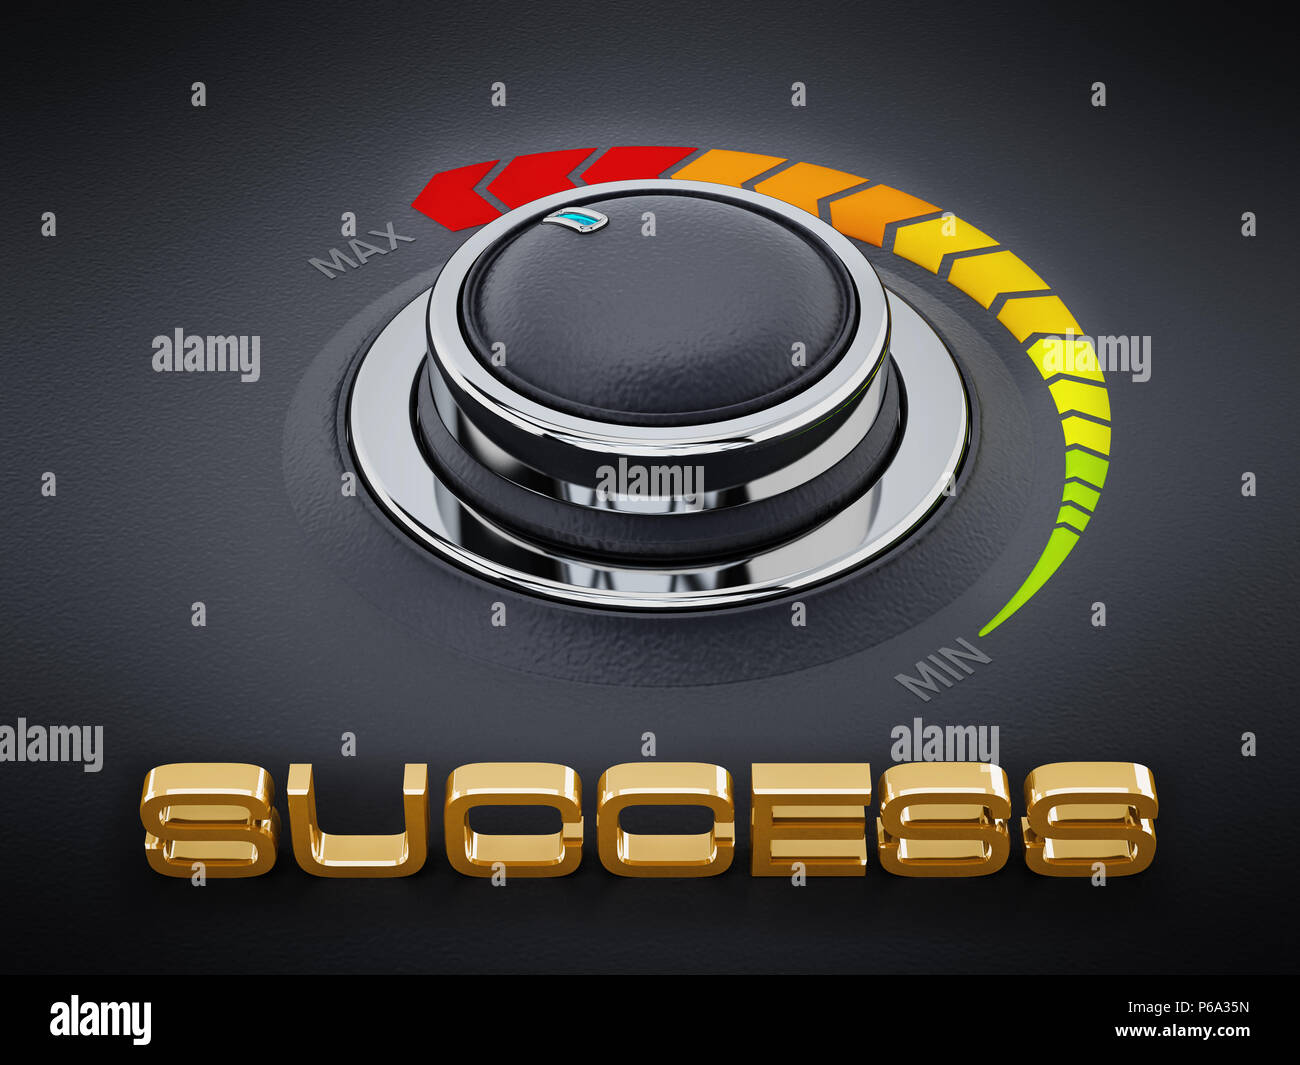 Vintage style control knob dial with success text. 3D illustration. - Stock Image